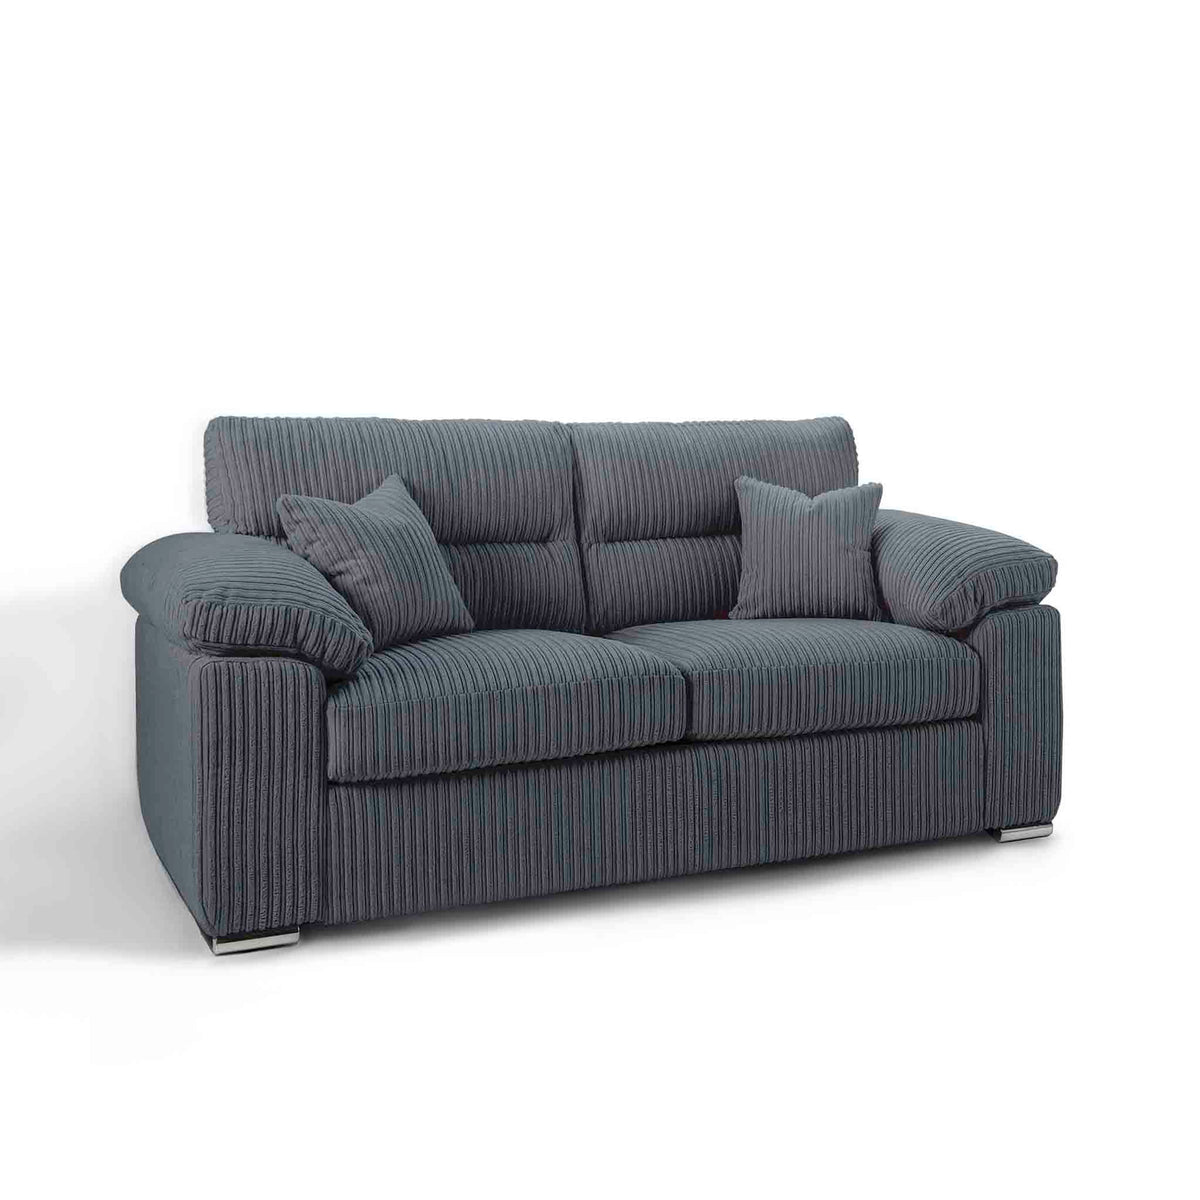 Amalfi Charcoal 2 Seater Fabric Sofa from Roseland Furniture